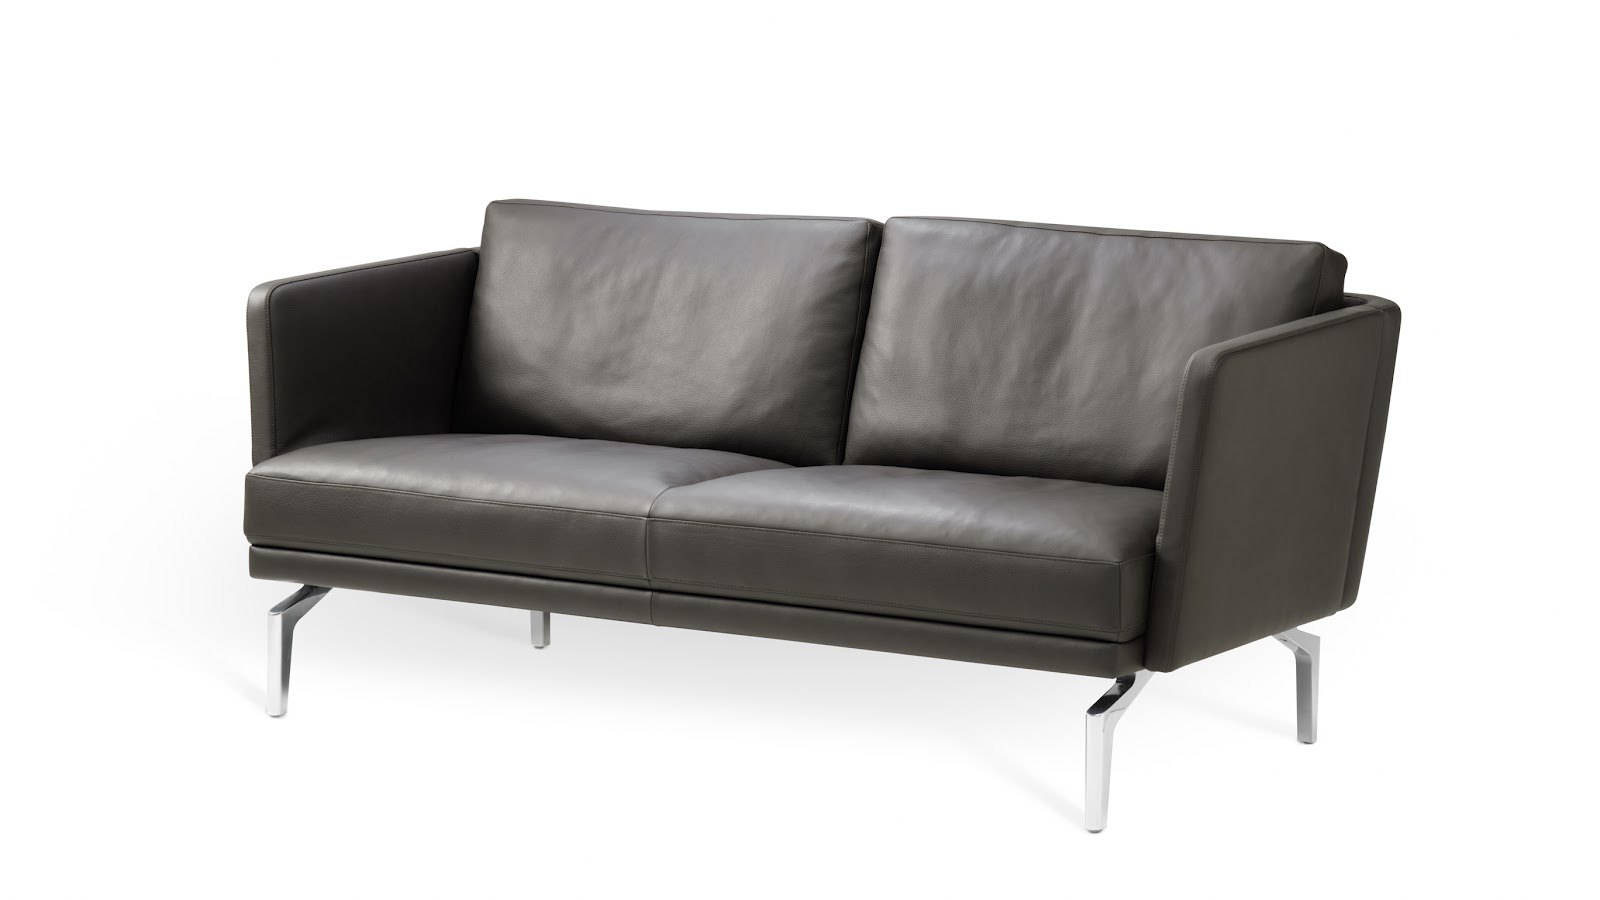 sofa frames for upholstery standard size of 3 seater august 2012 designer furniture fitted